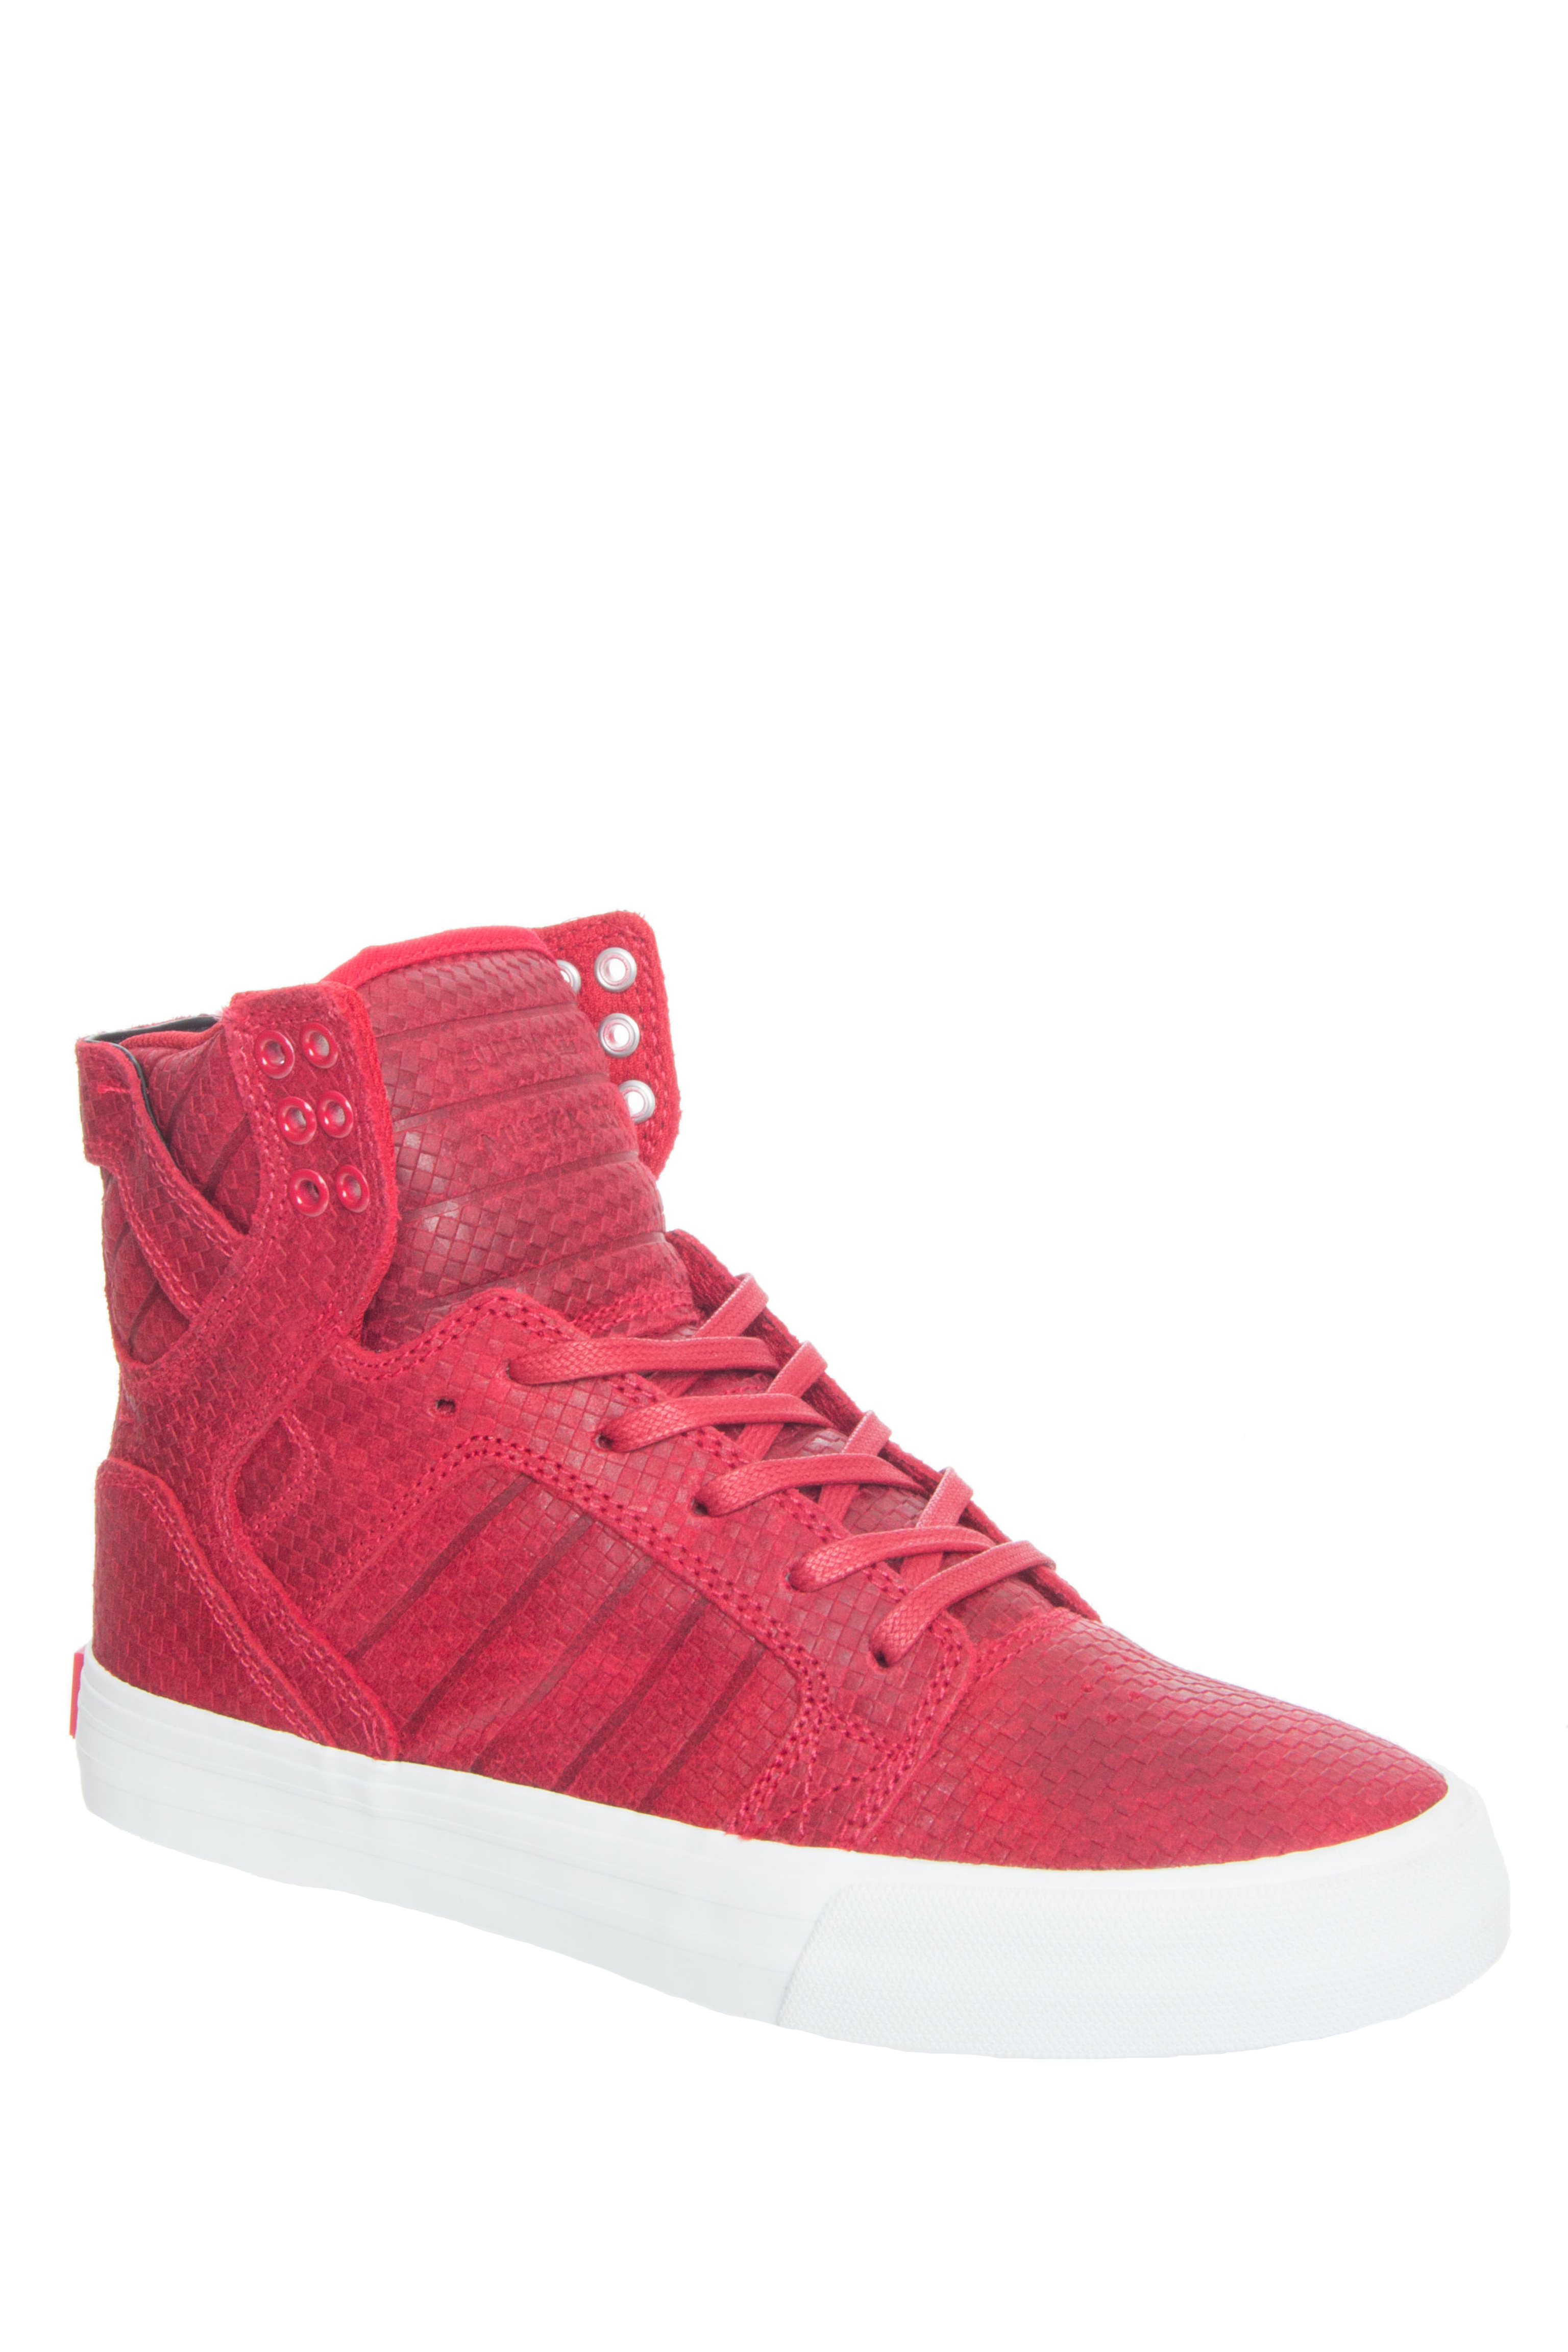 Supra Skytop High Top - Red / Embossed Suede